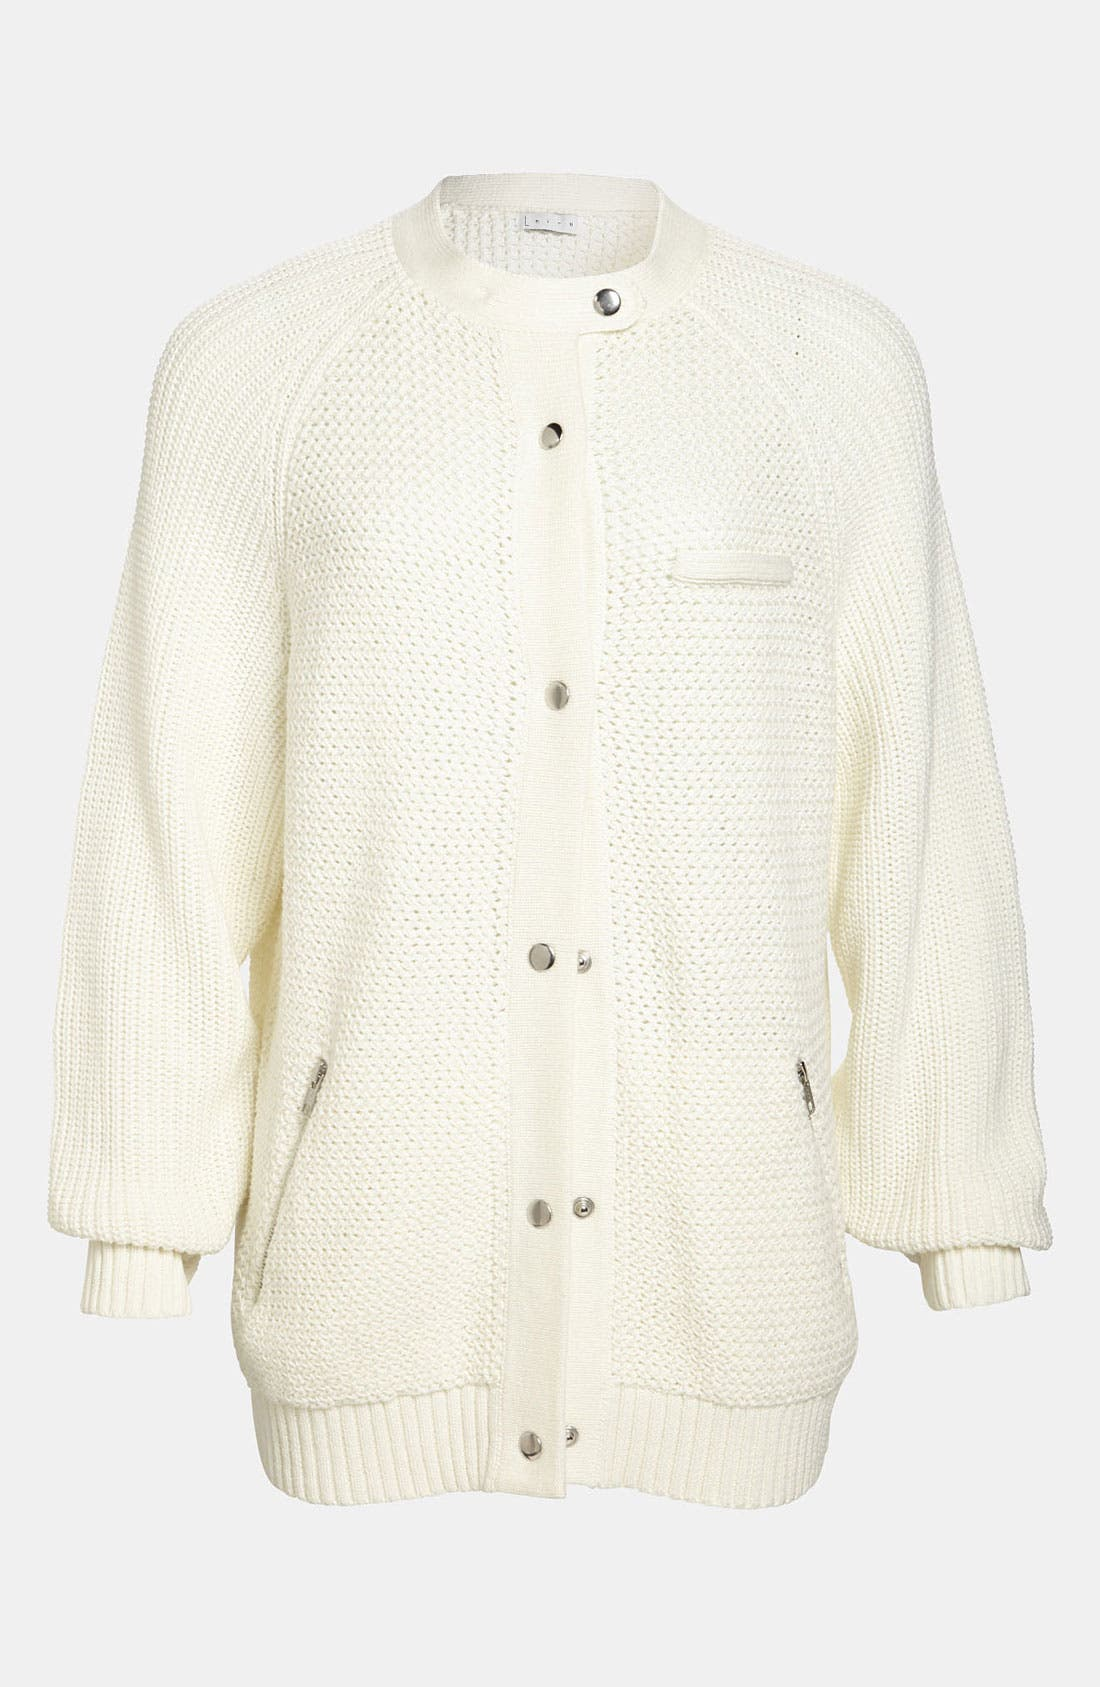 Main Image - Leith 'Sports' Knit Bomber Cardigan